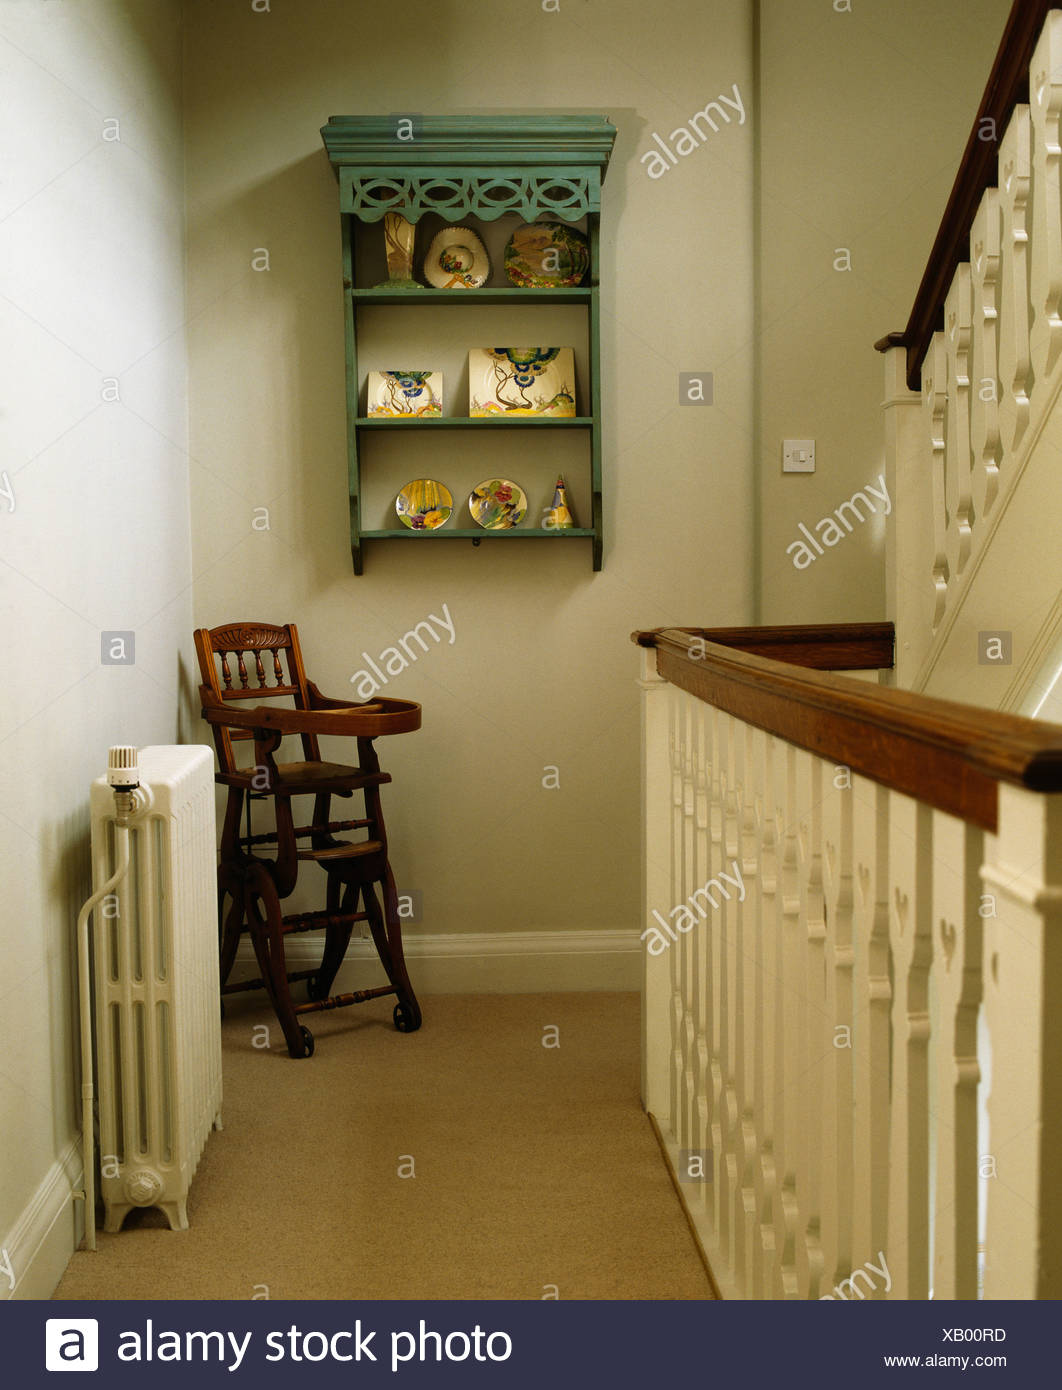 Small Green Shelves On Wall Above Childu0027s Antique High Chair On Traditional  Cream Landing